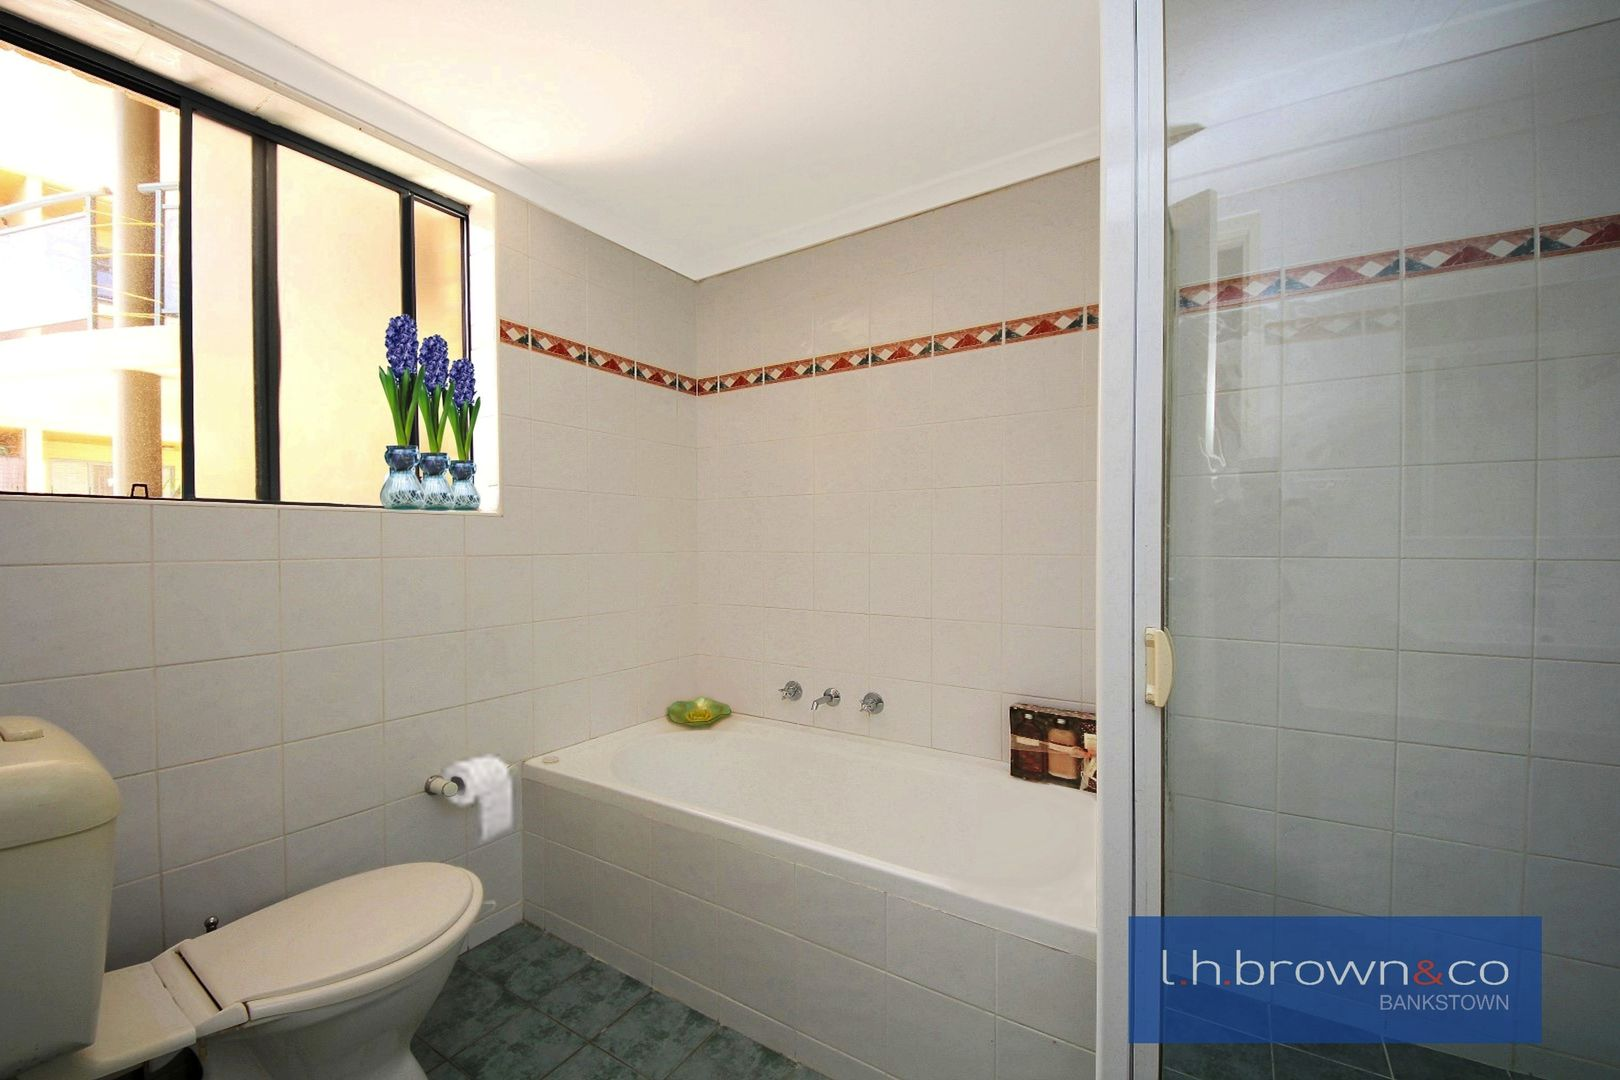 Unit 13/4-8 Gordon St, Bankstown NSW 2200, Image 2